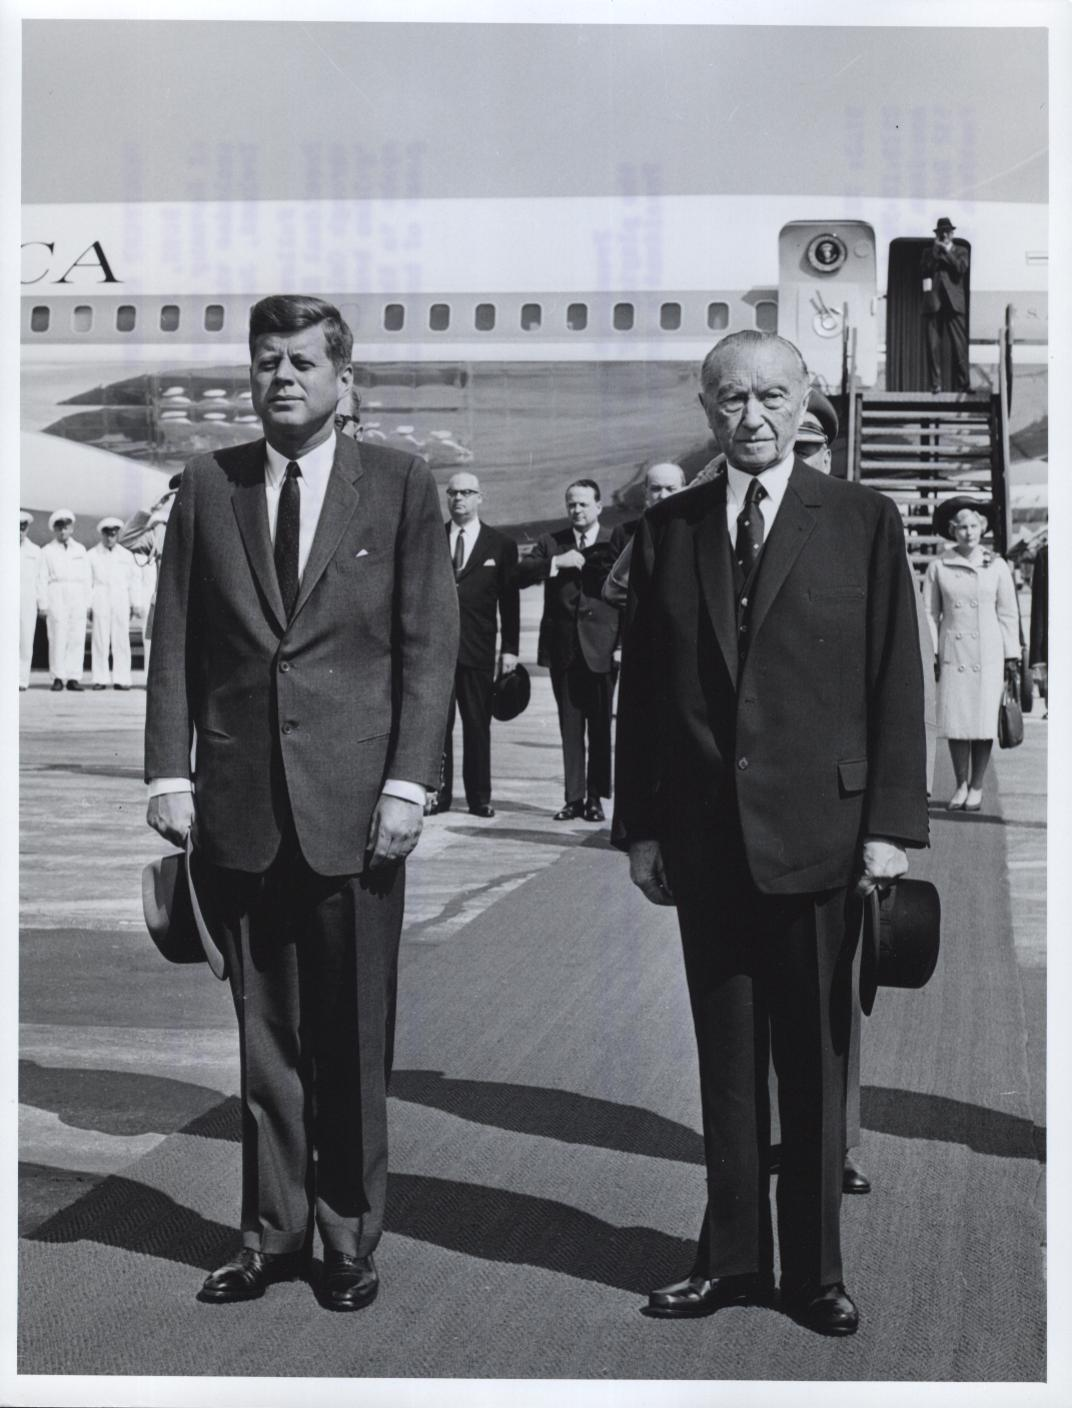 President Kennedy And Chancellor Adenauer Stand At Attention During The Playing of the U.S. and German National Anthems Immediately After The President's Arrival At Wahn Airport Today